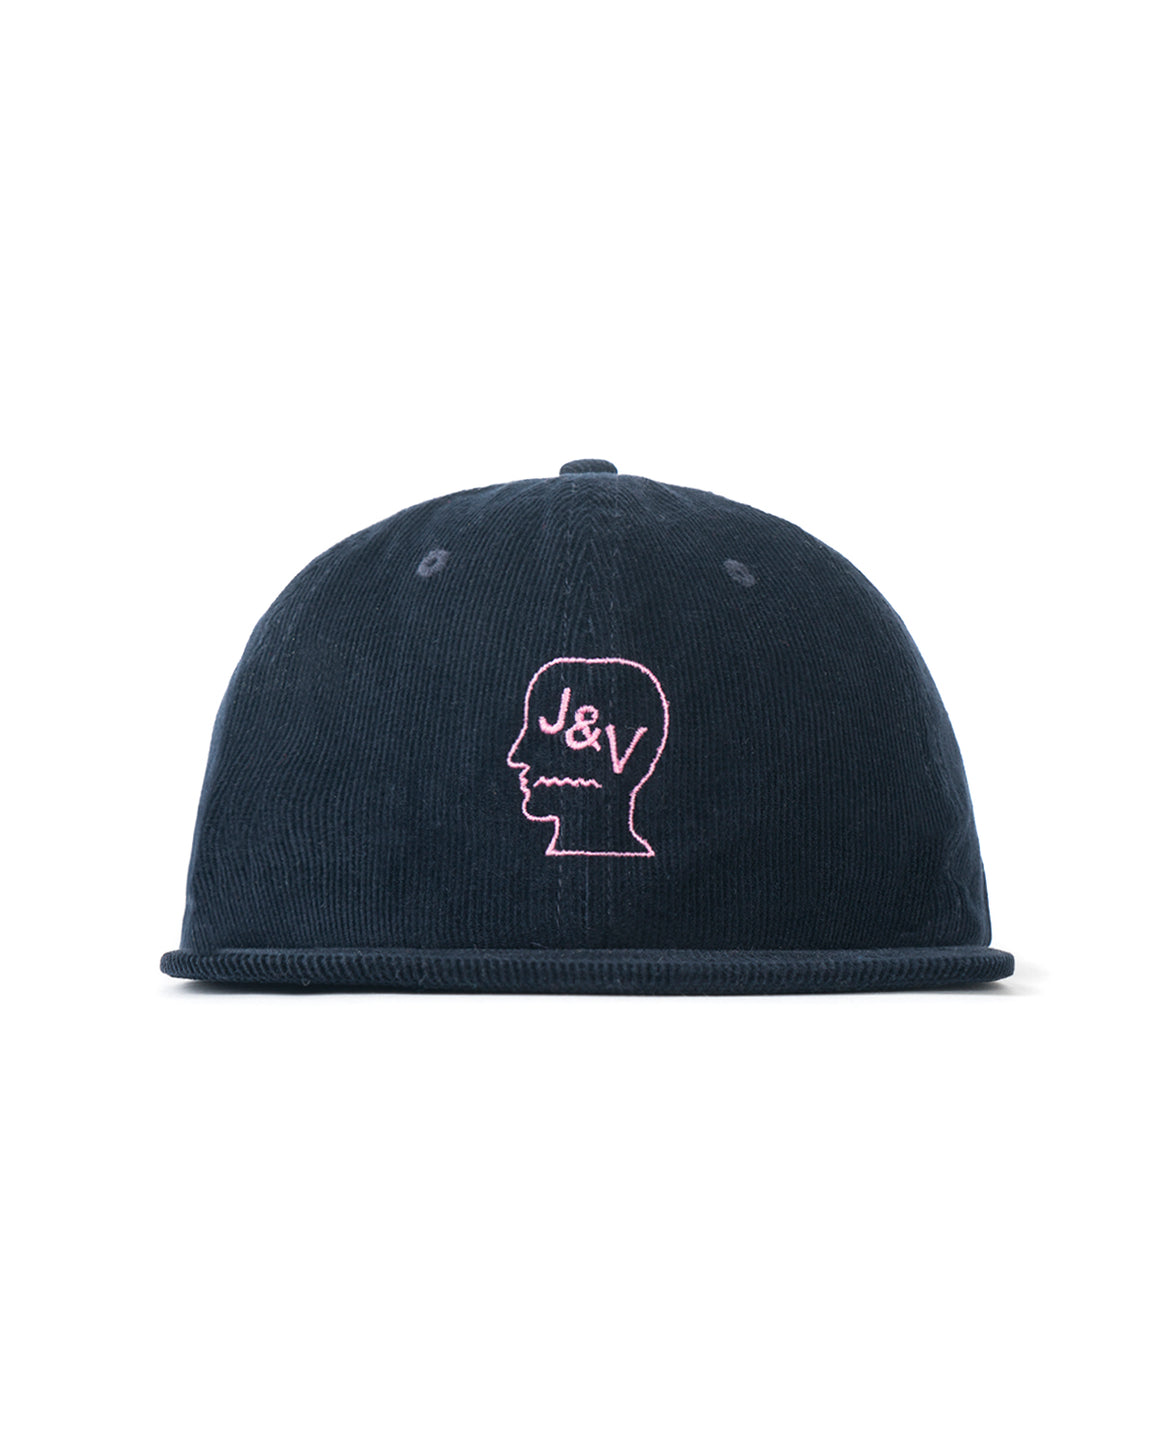 Jon & Vinny's Corduroy Six Panel Hat - Navy